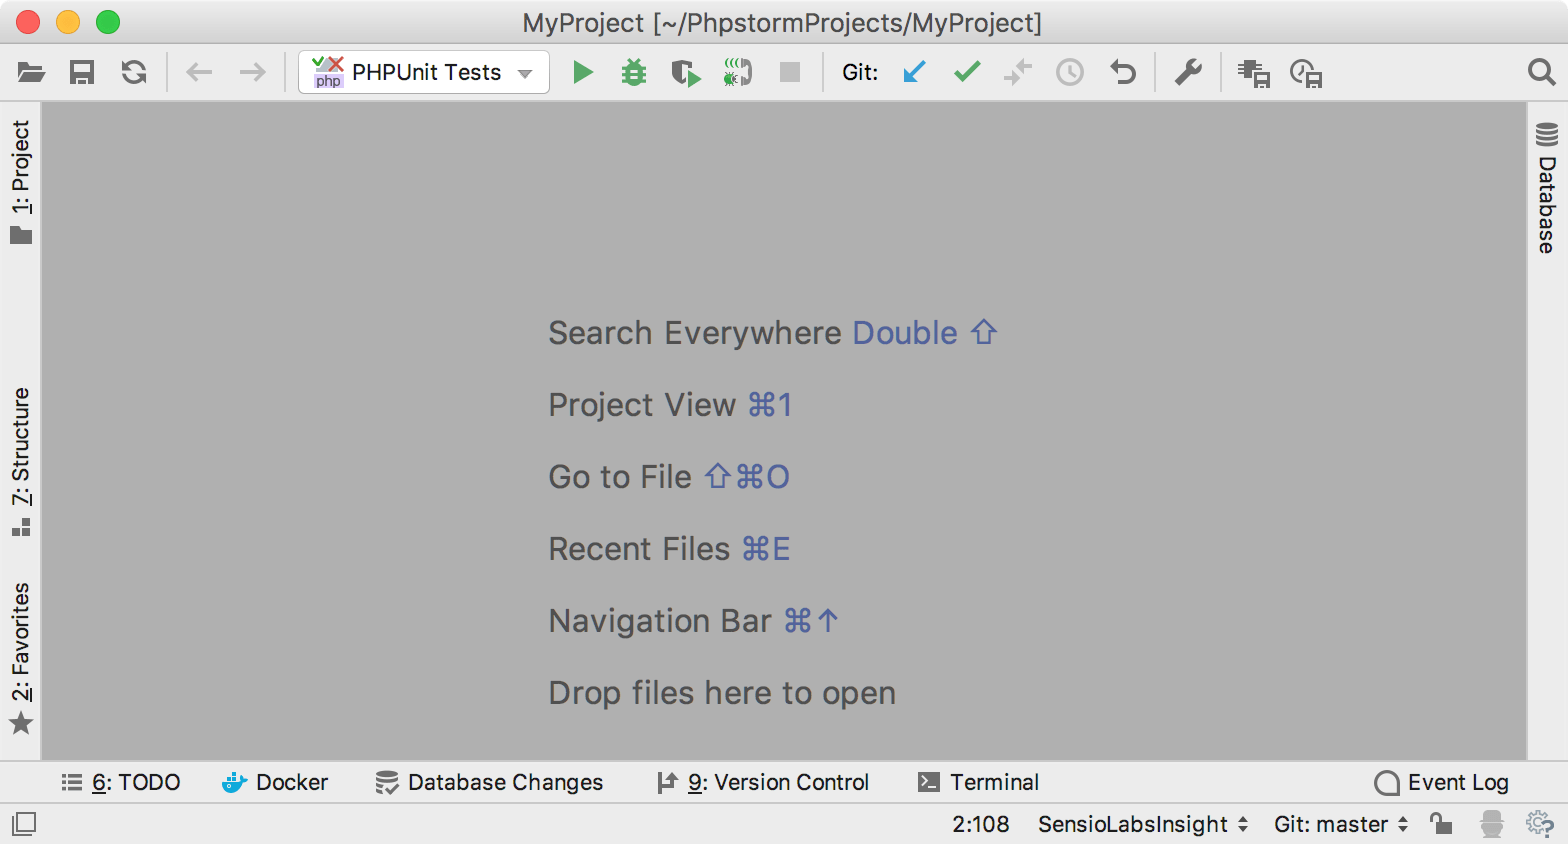 Ps migration guide tool window bar 2